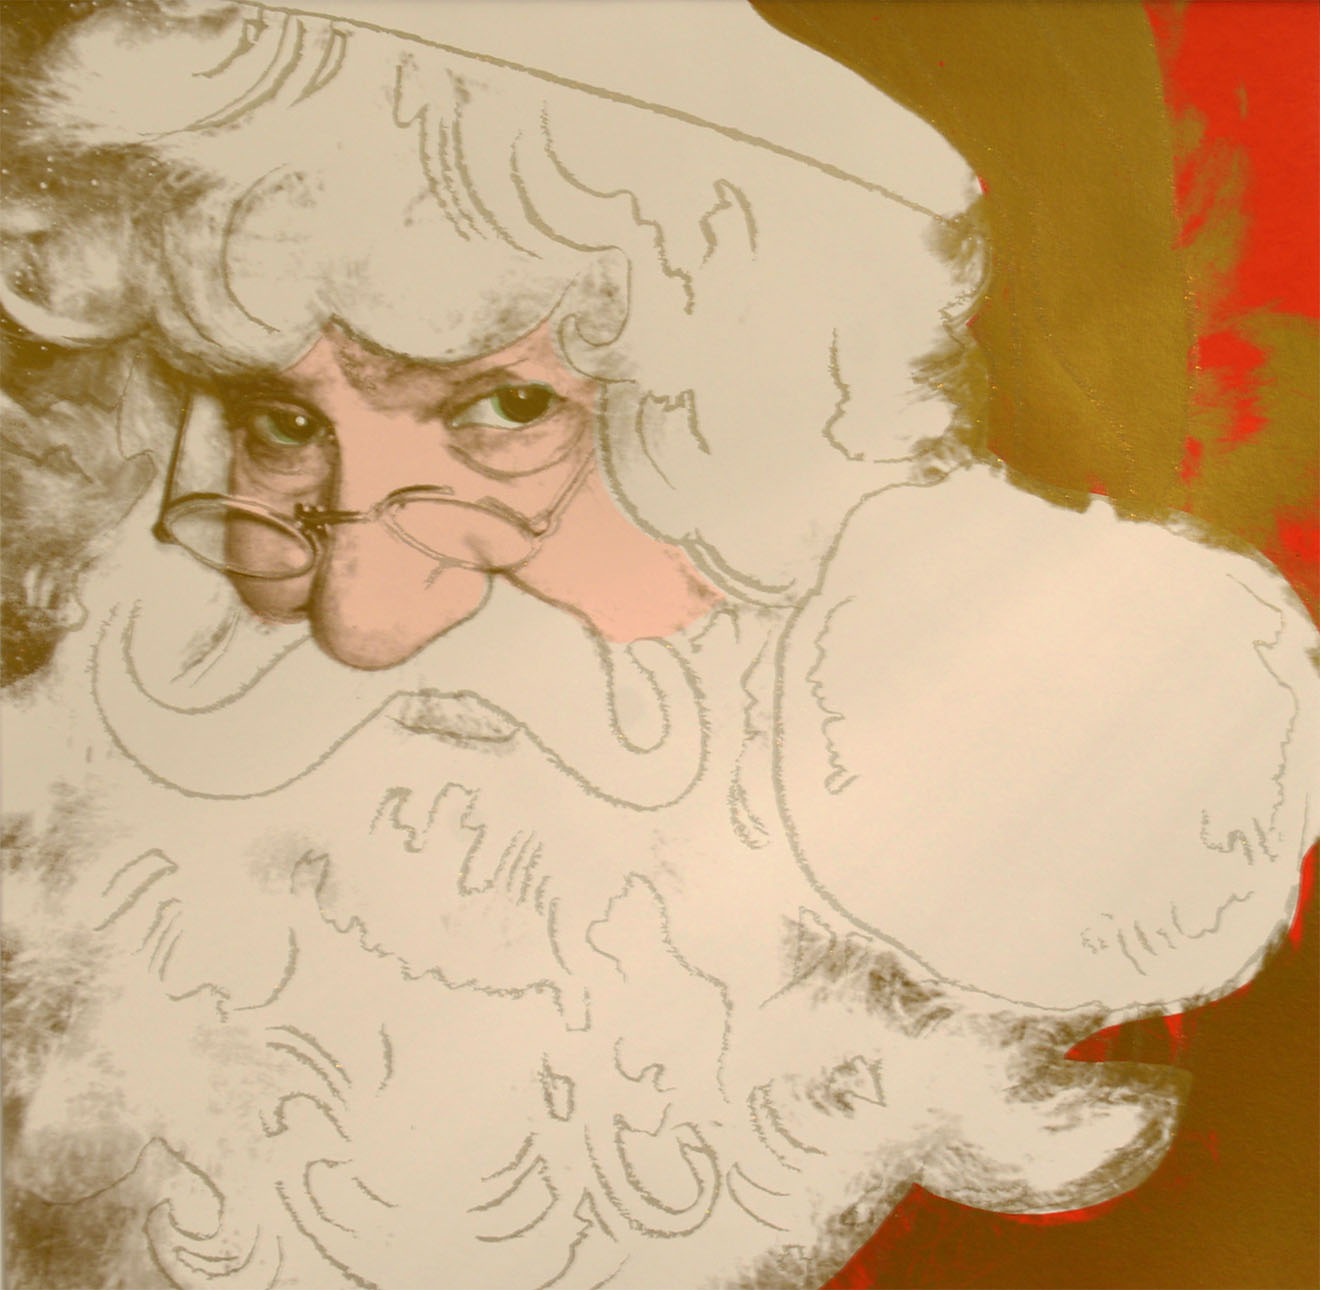 Santa Claus from Myths Portfolio by ANDY Warhol